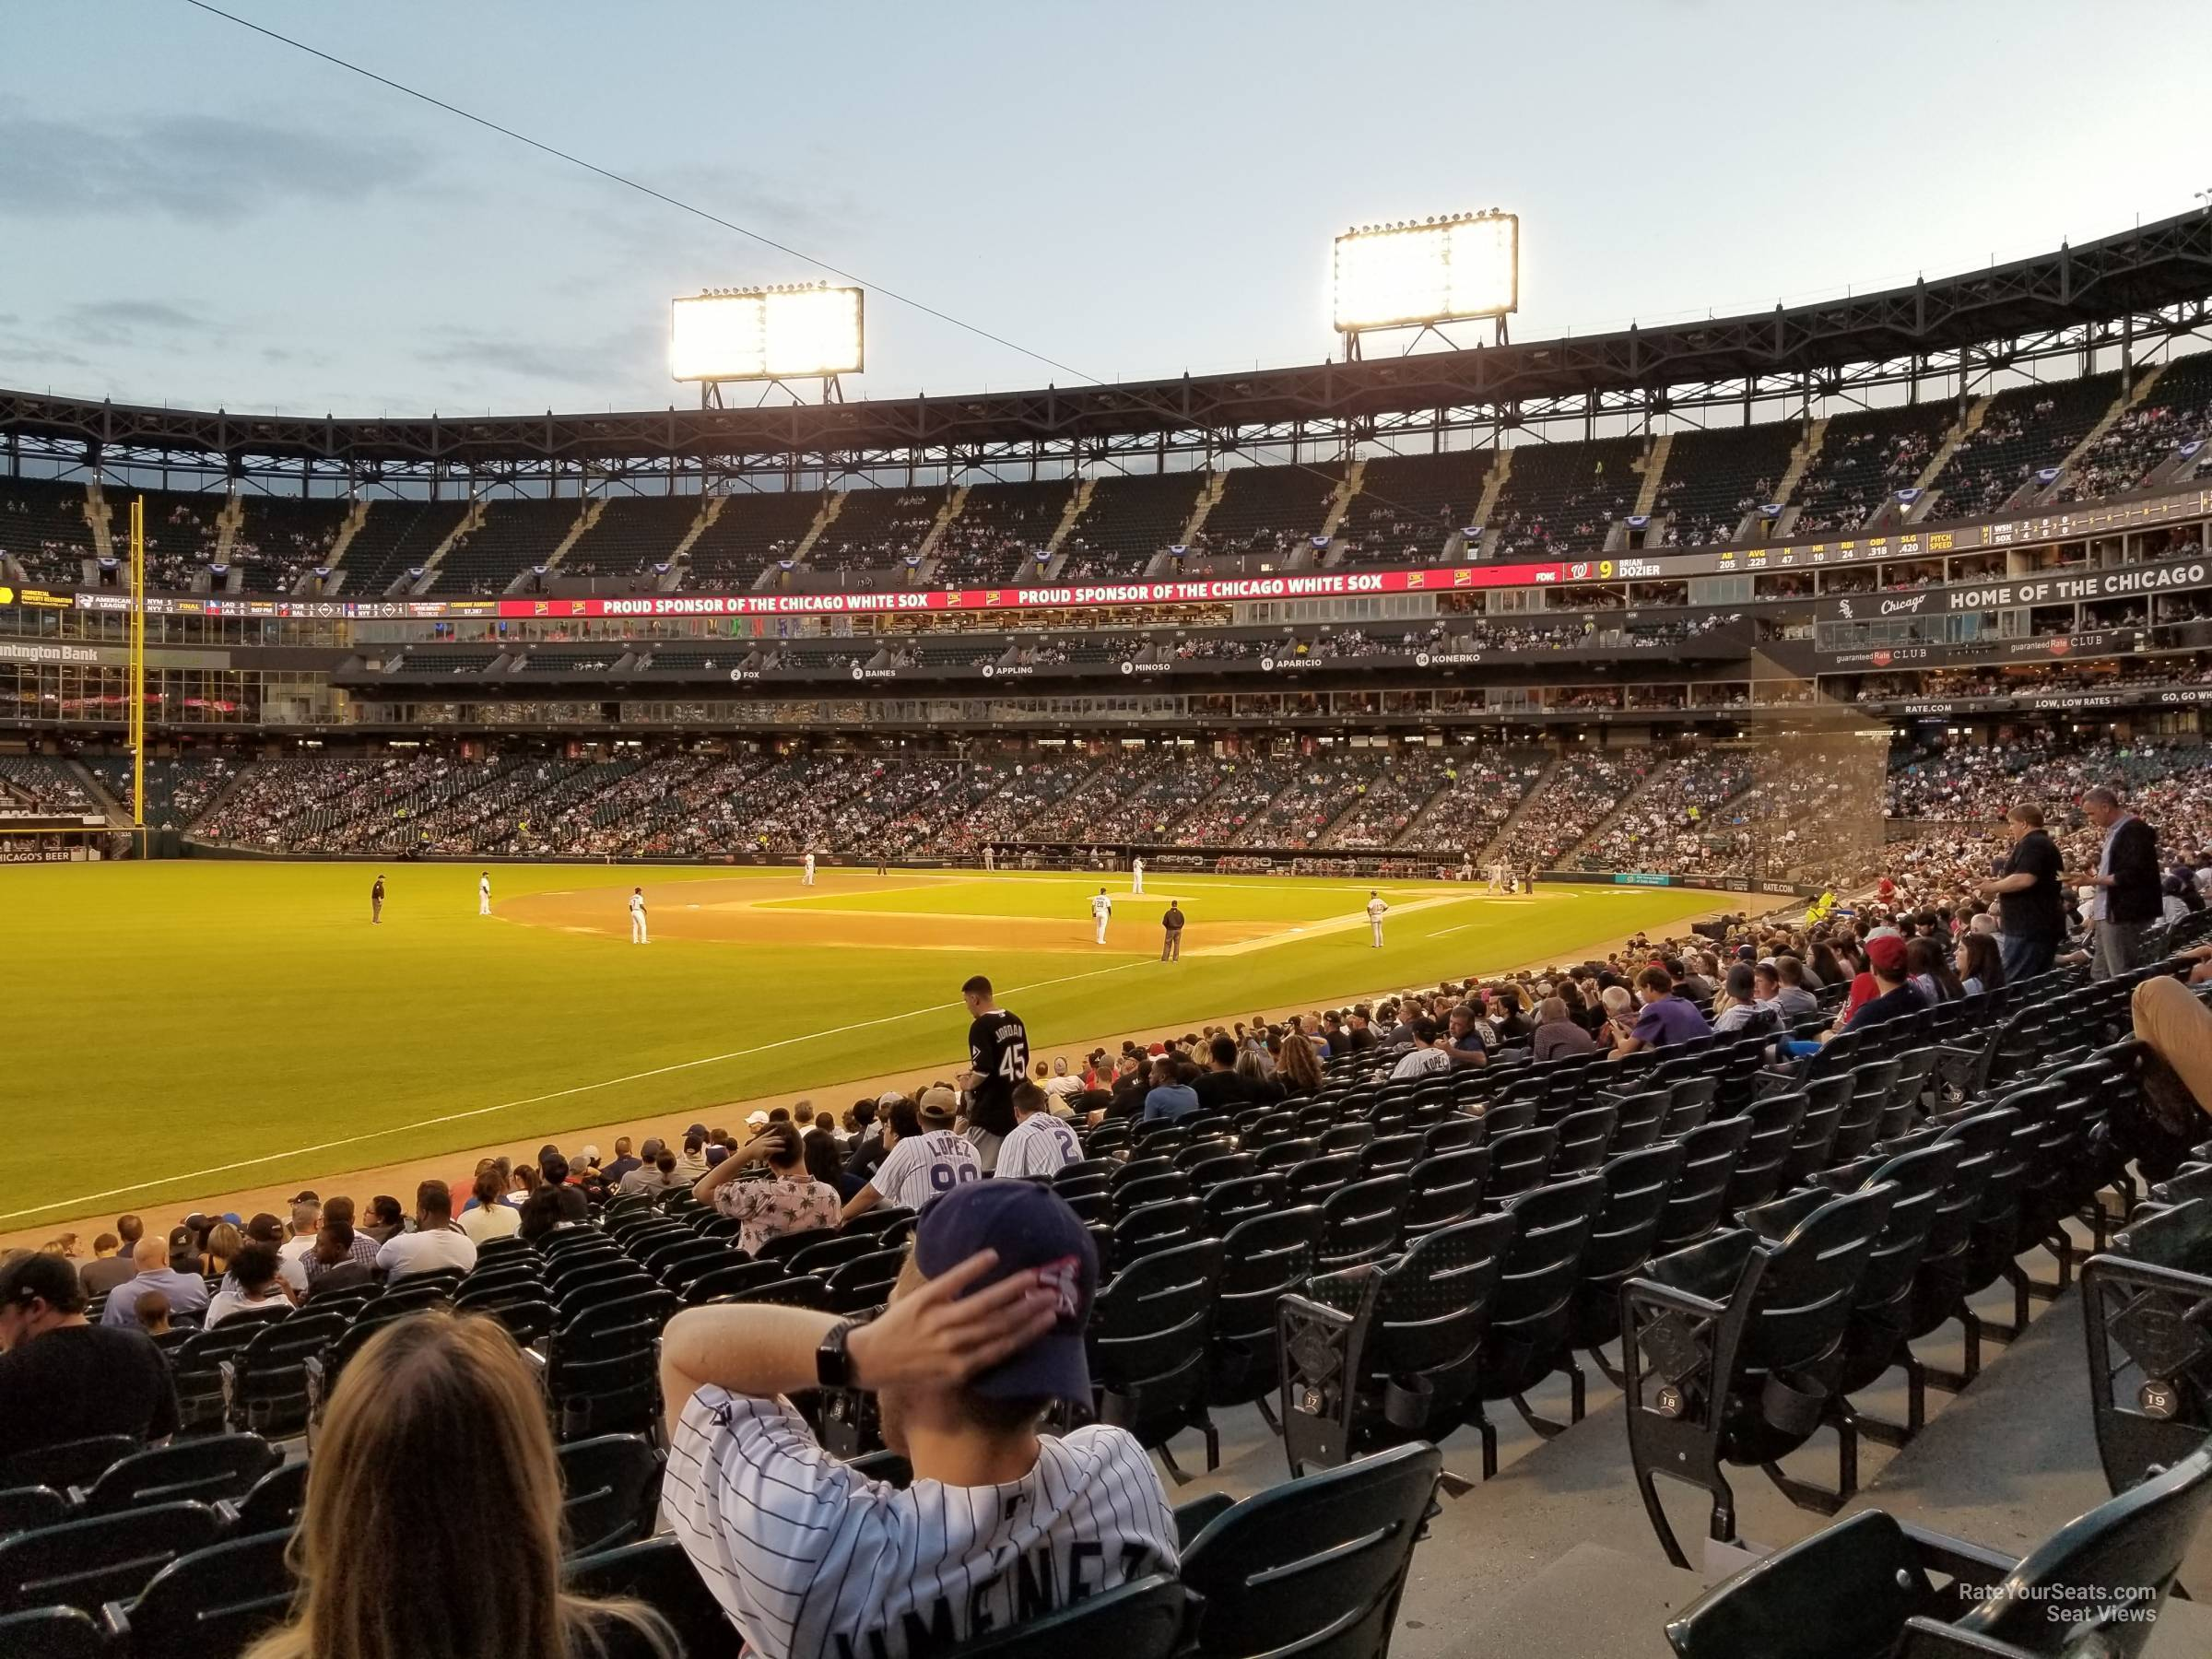 Section 151 seat view